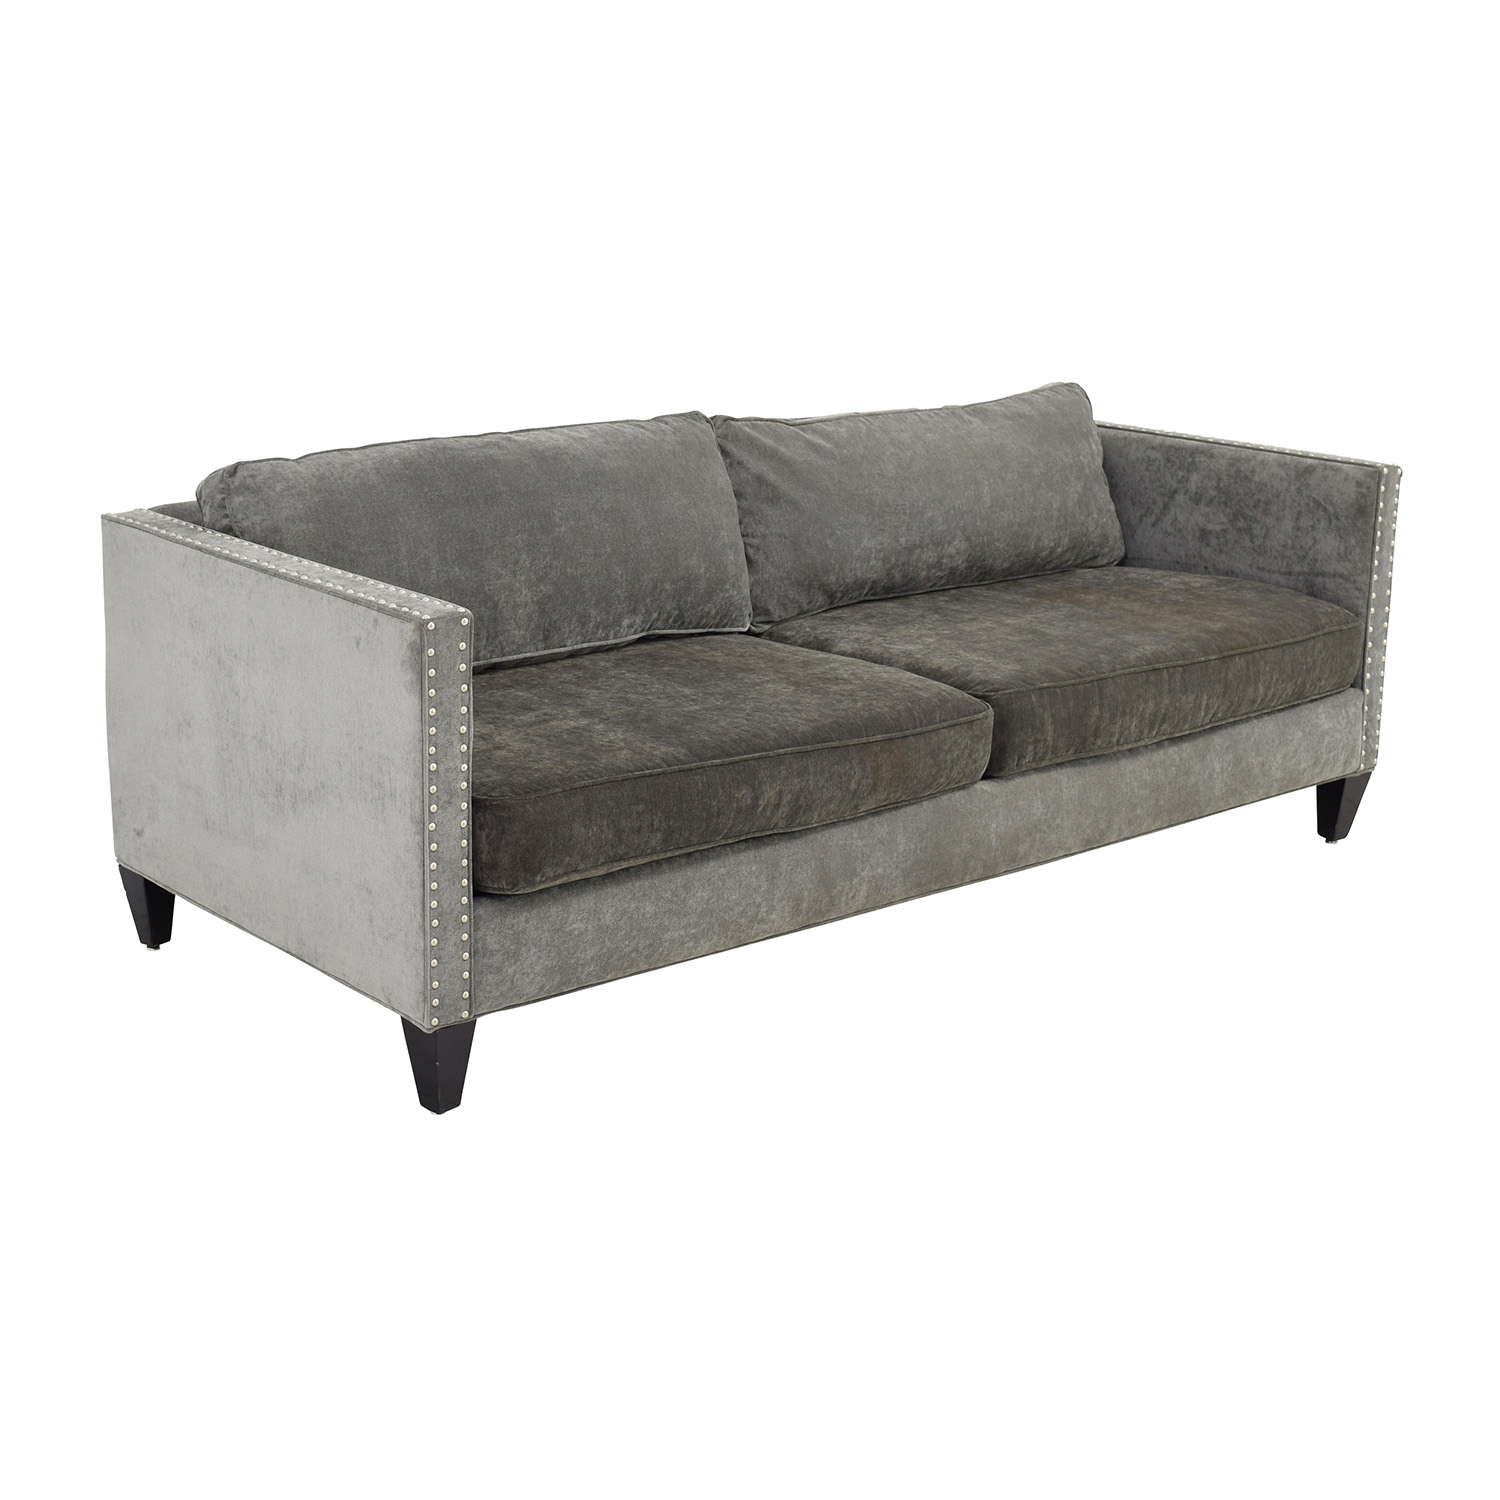 Grey studded sofa 30 off fl on white three cushion sofa for Leather studded couch